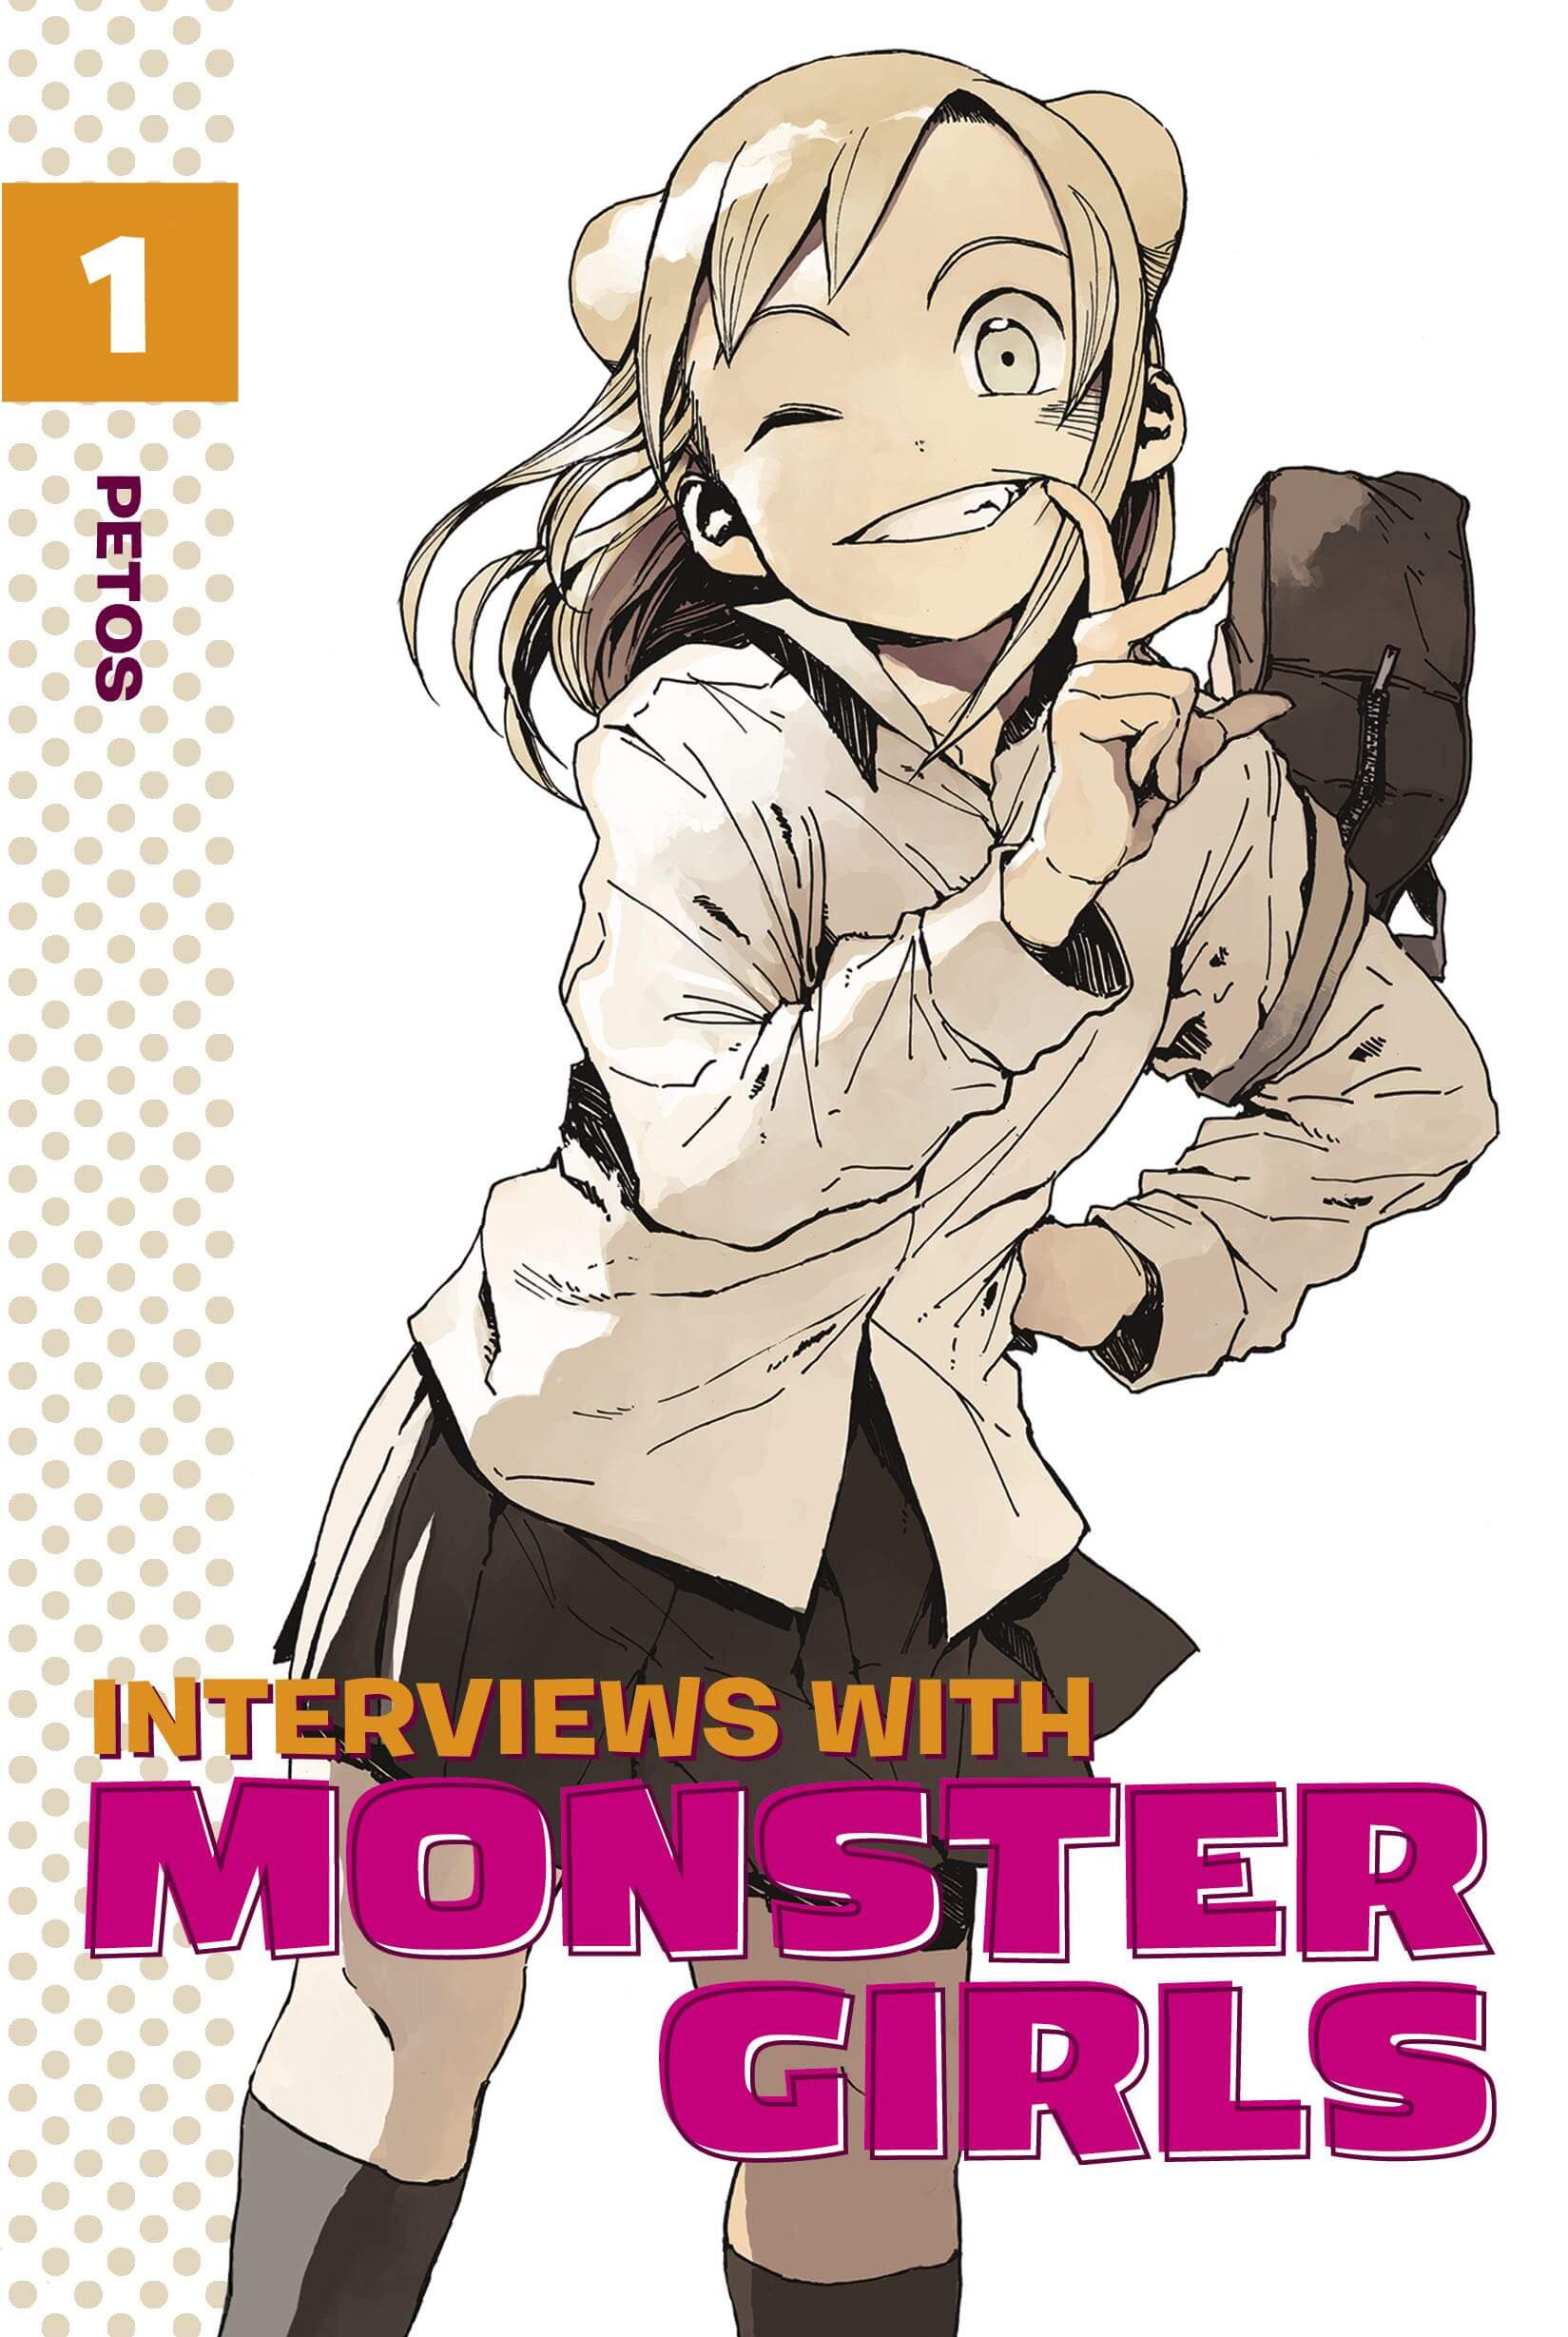 Most Viewed Interviews With Monster Girls Wallpapers 4k Wallpapers